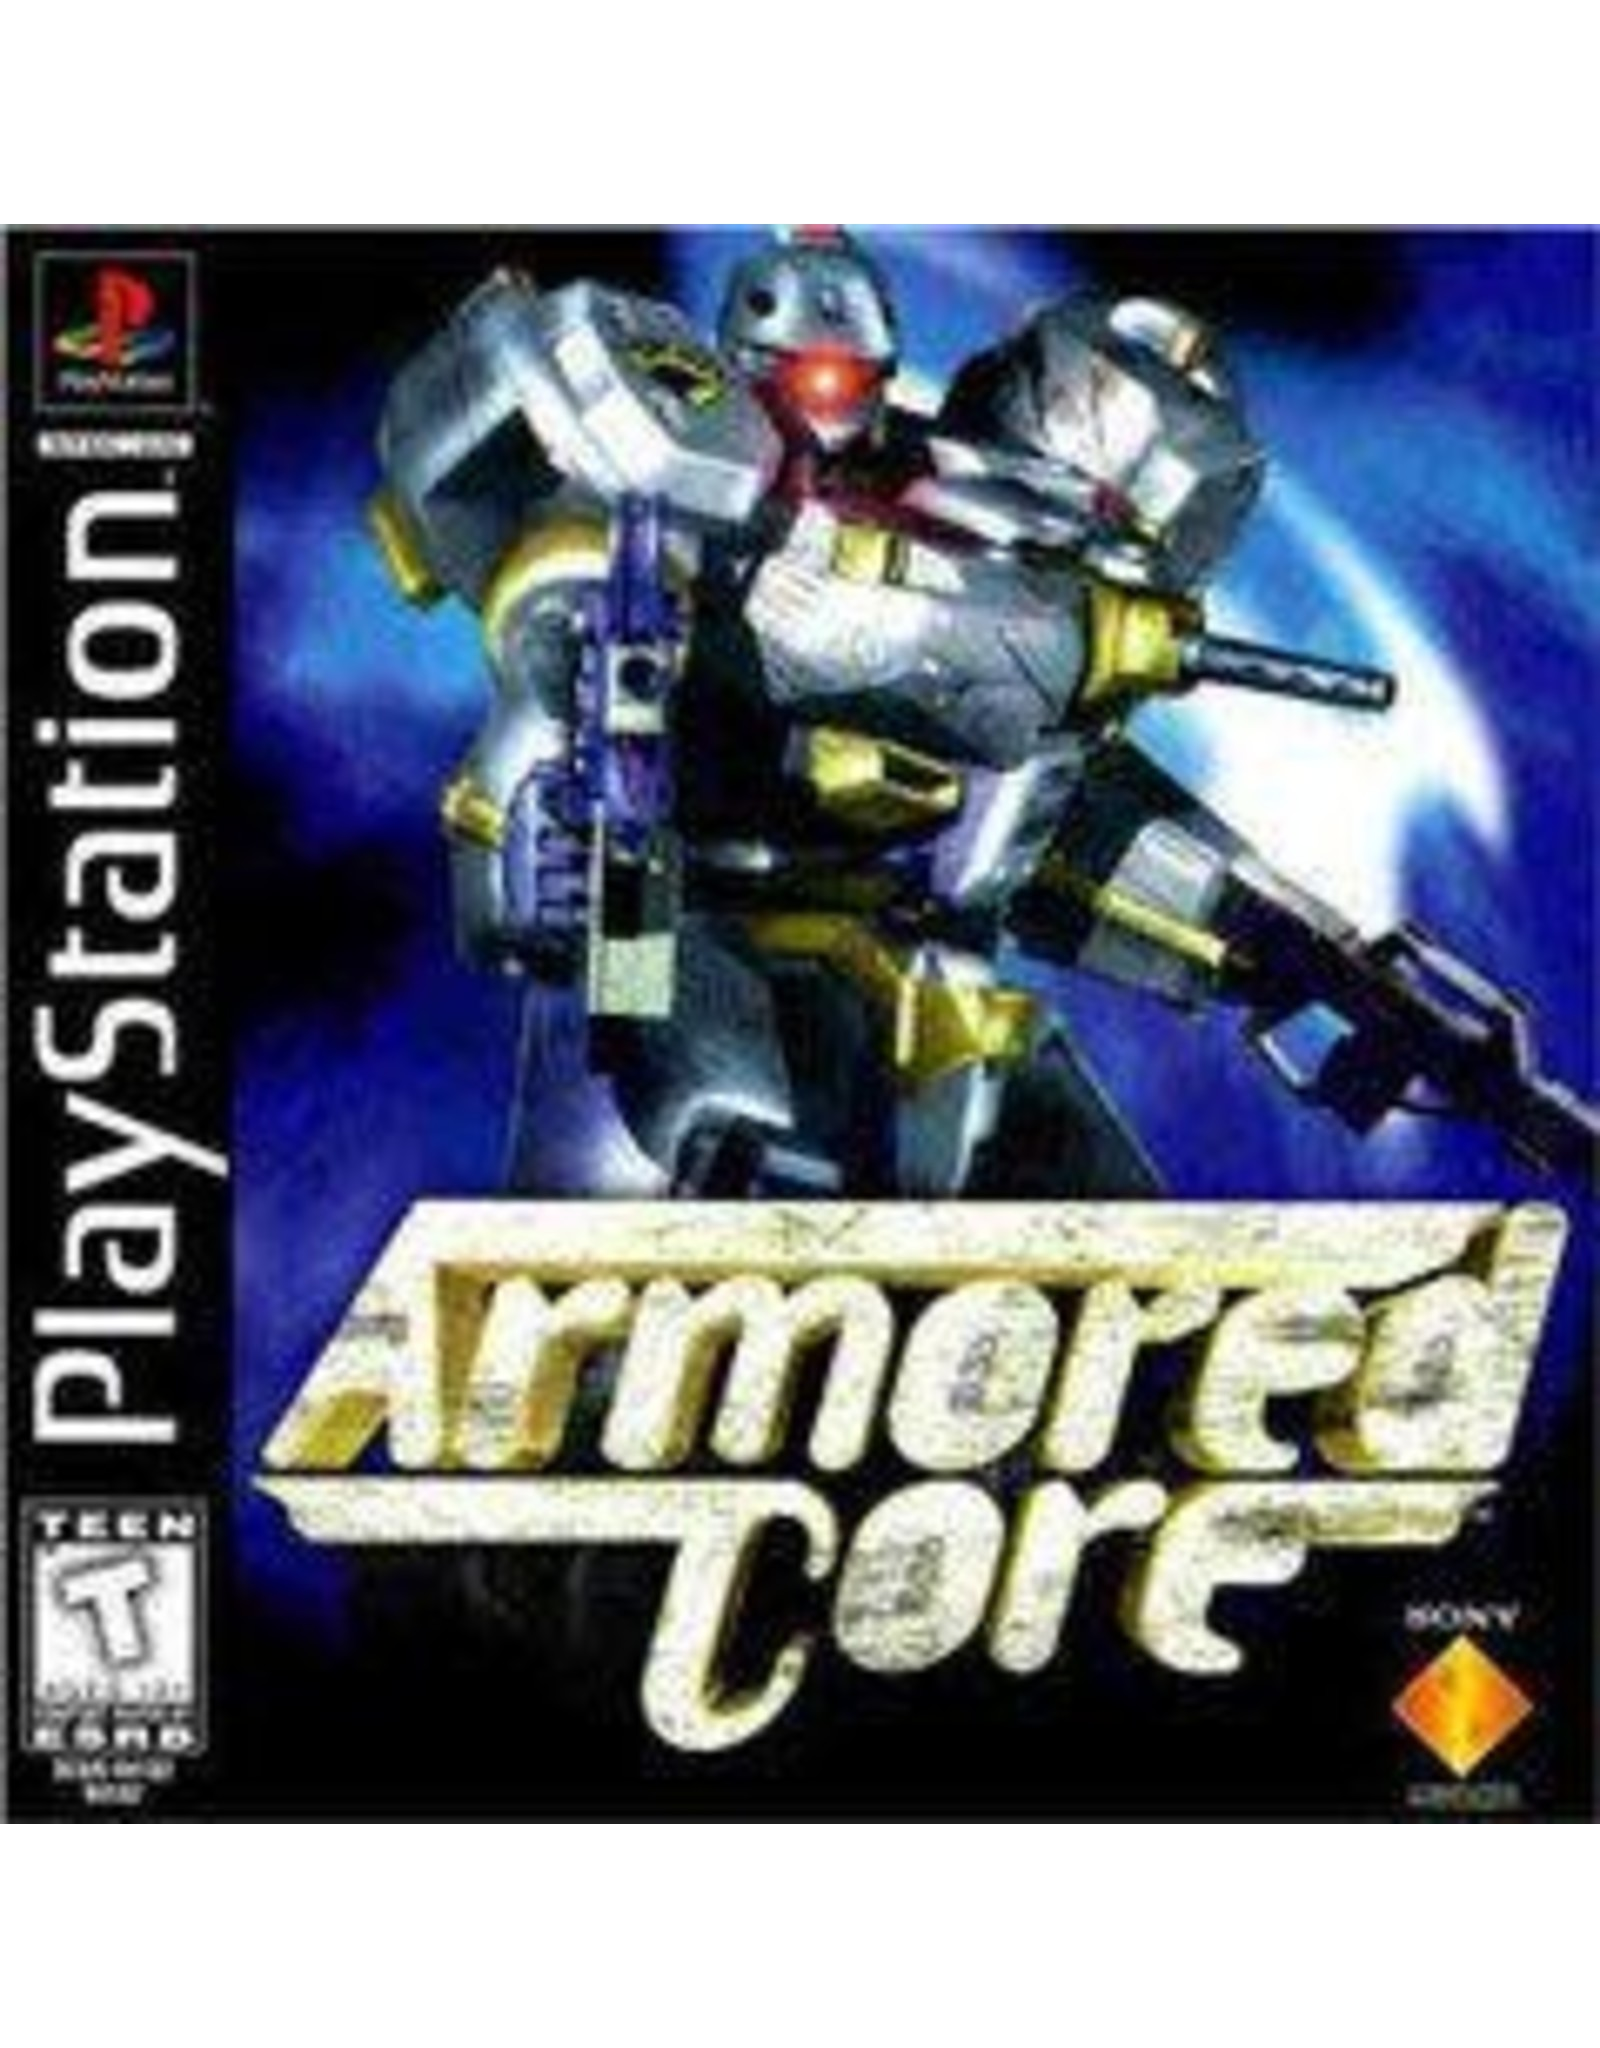 Playstation Armored Core (No Back Insert)